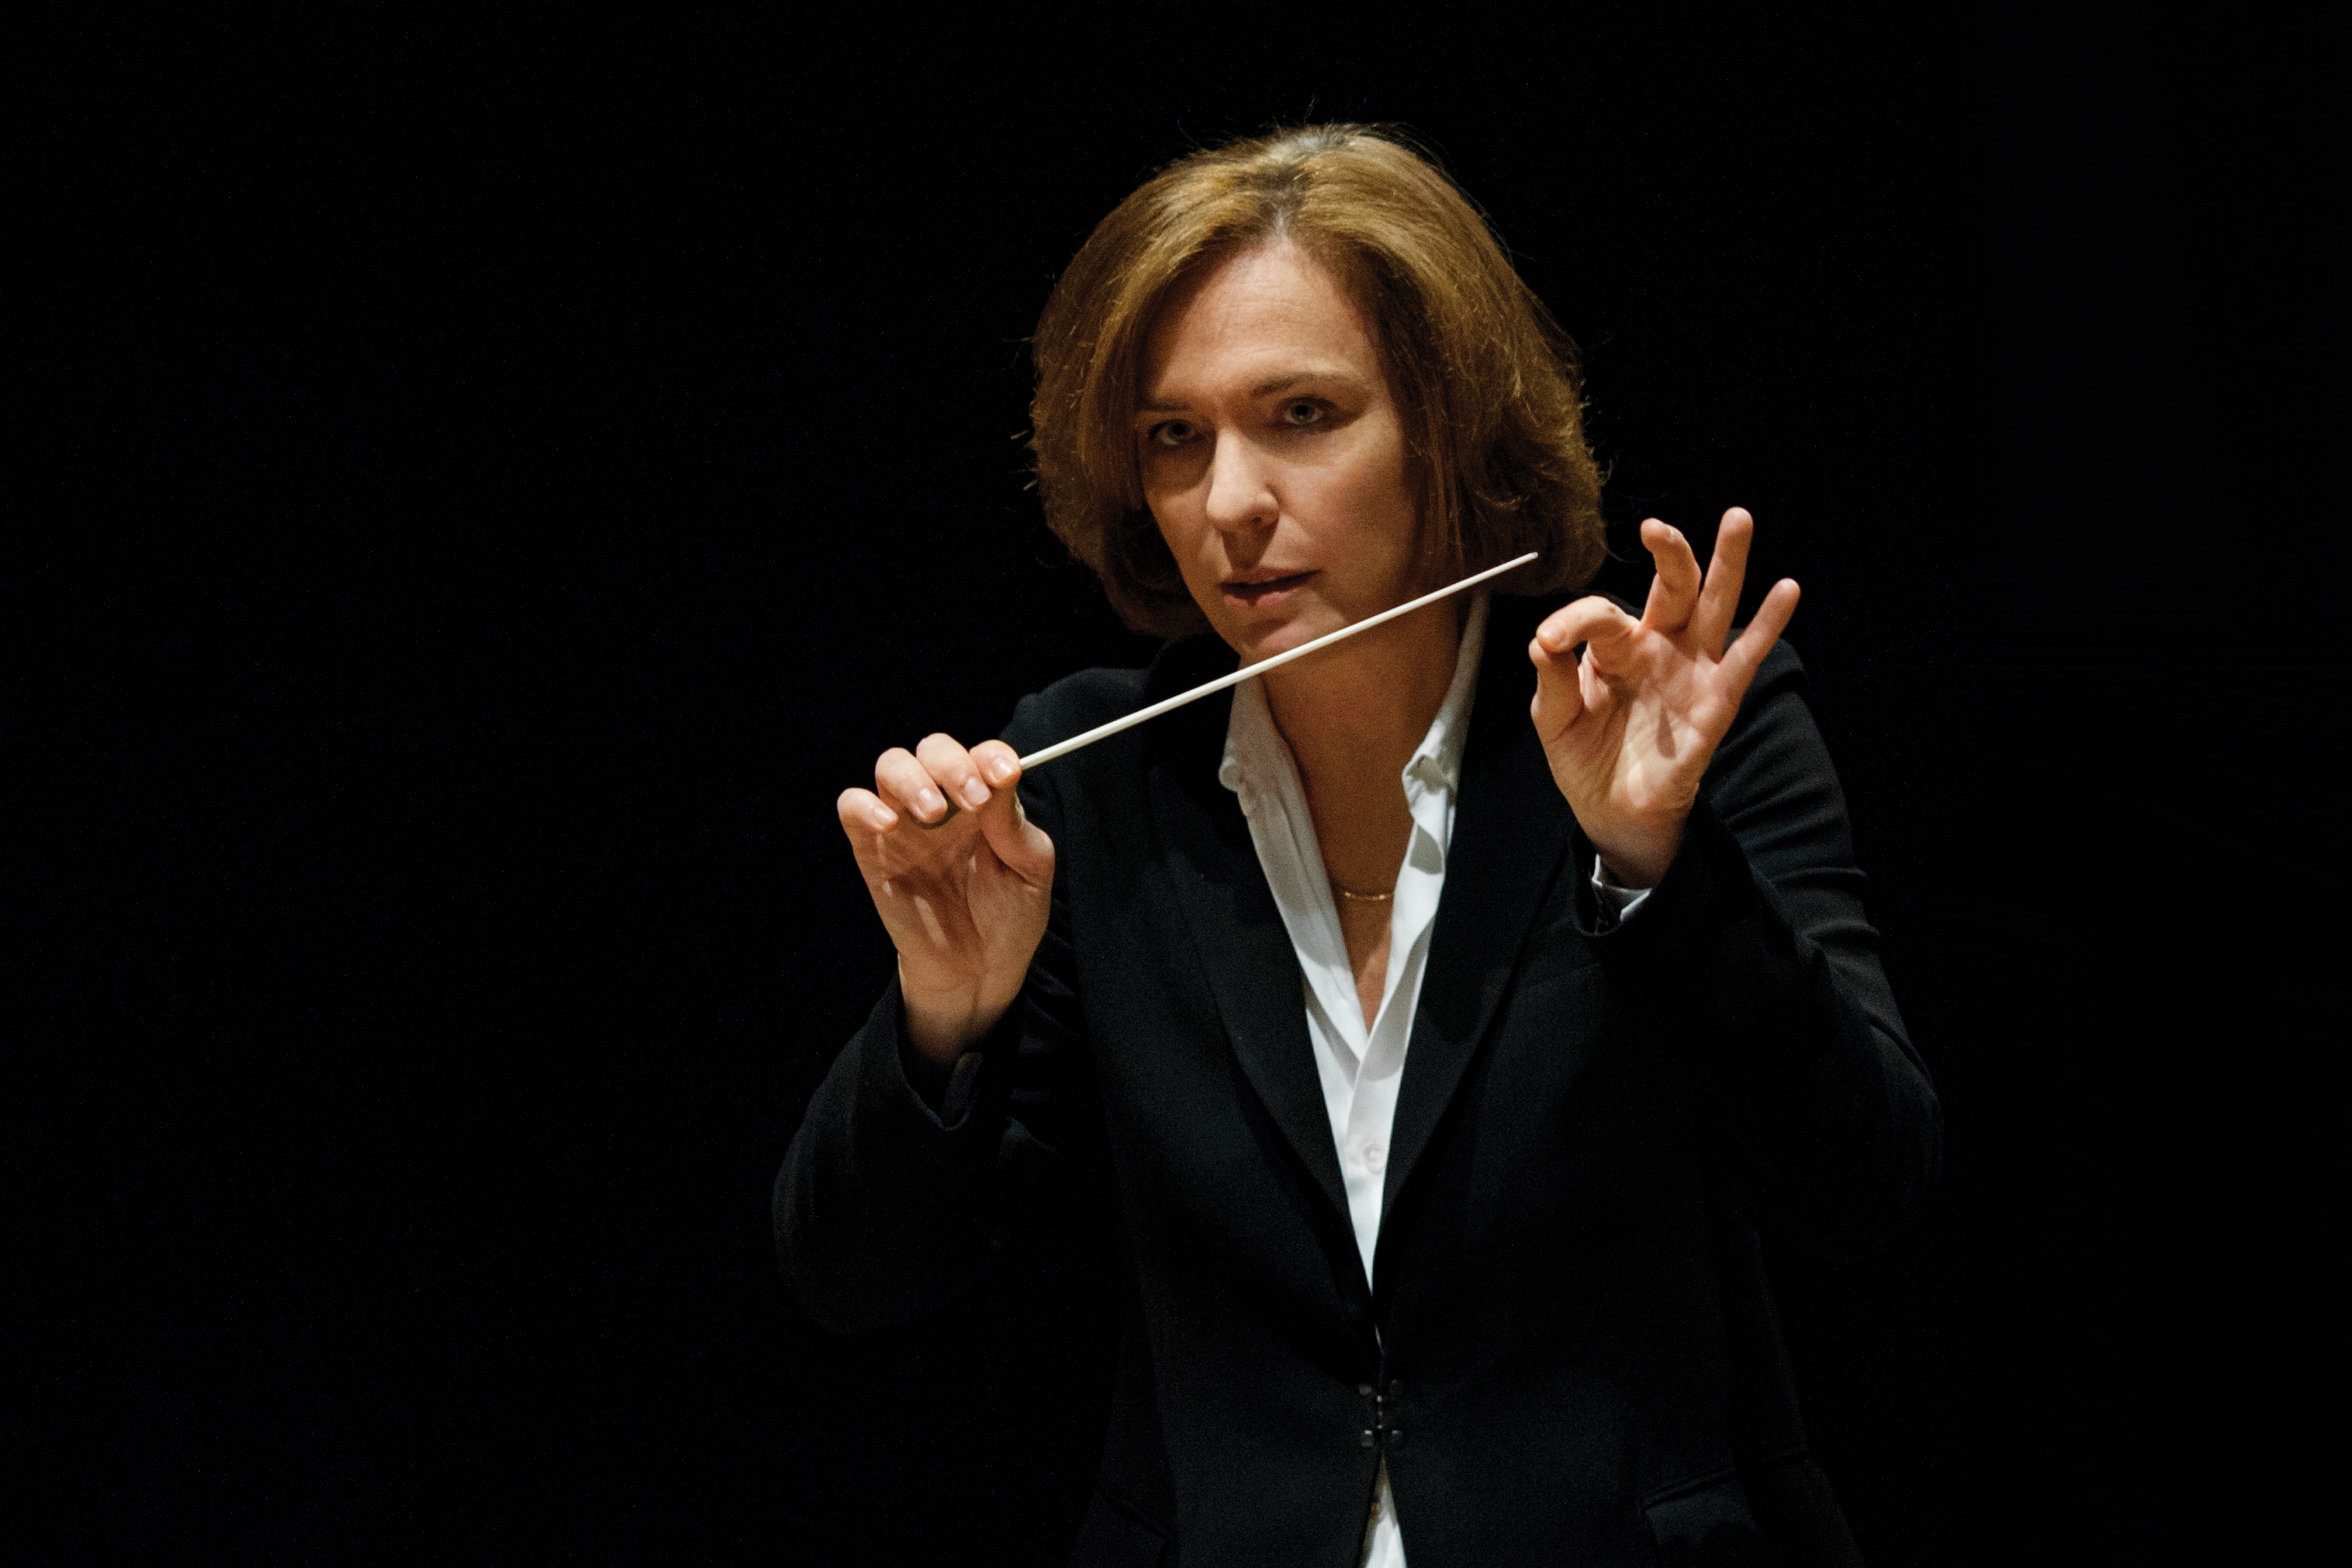 Why won't Salzburg hire women conductors?